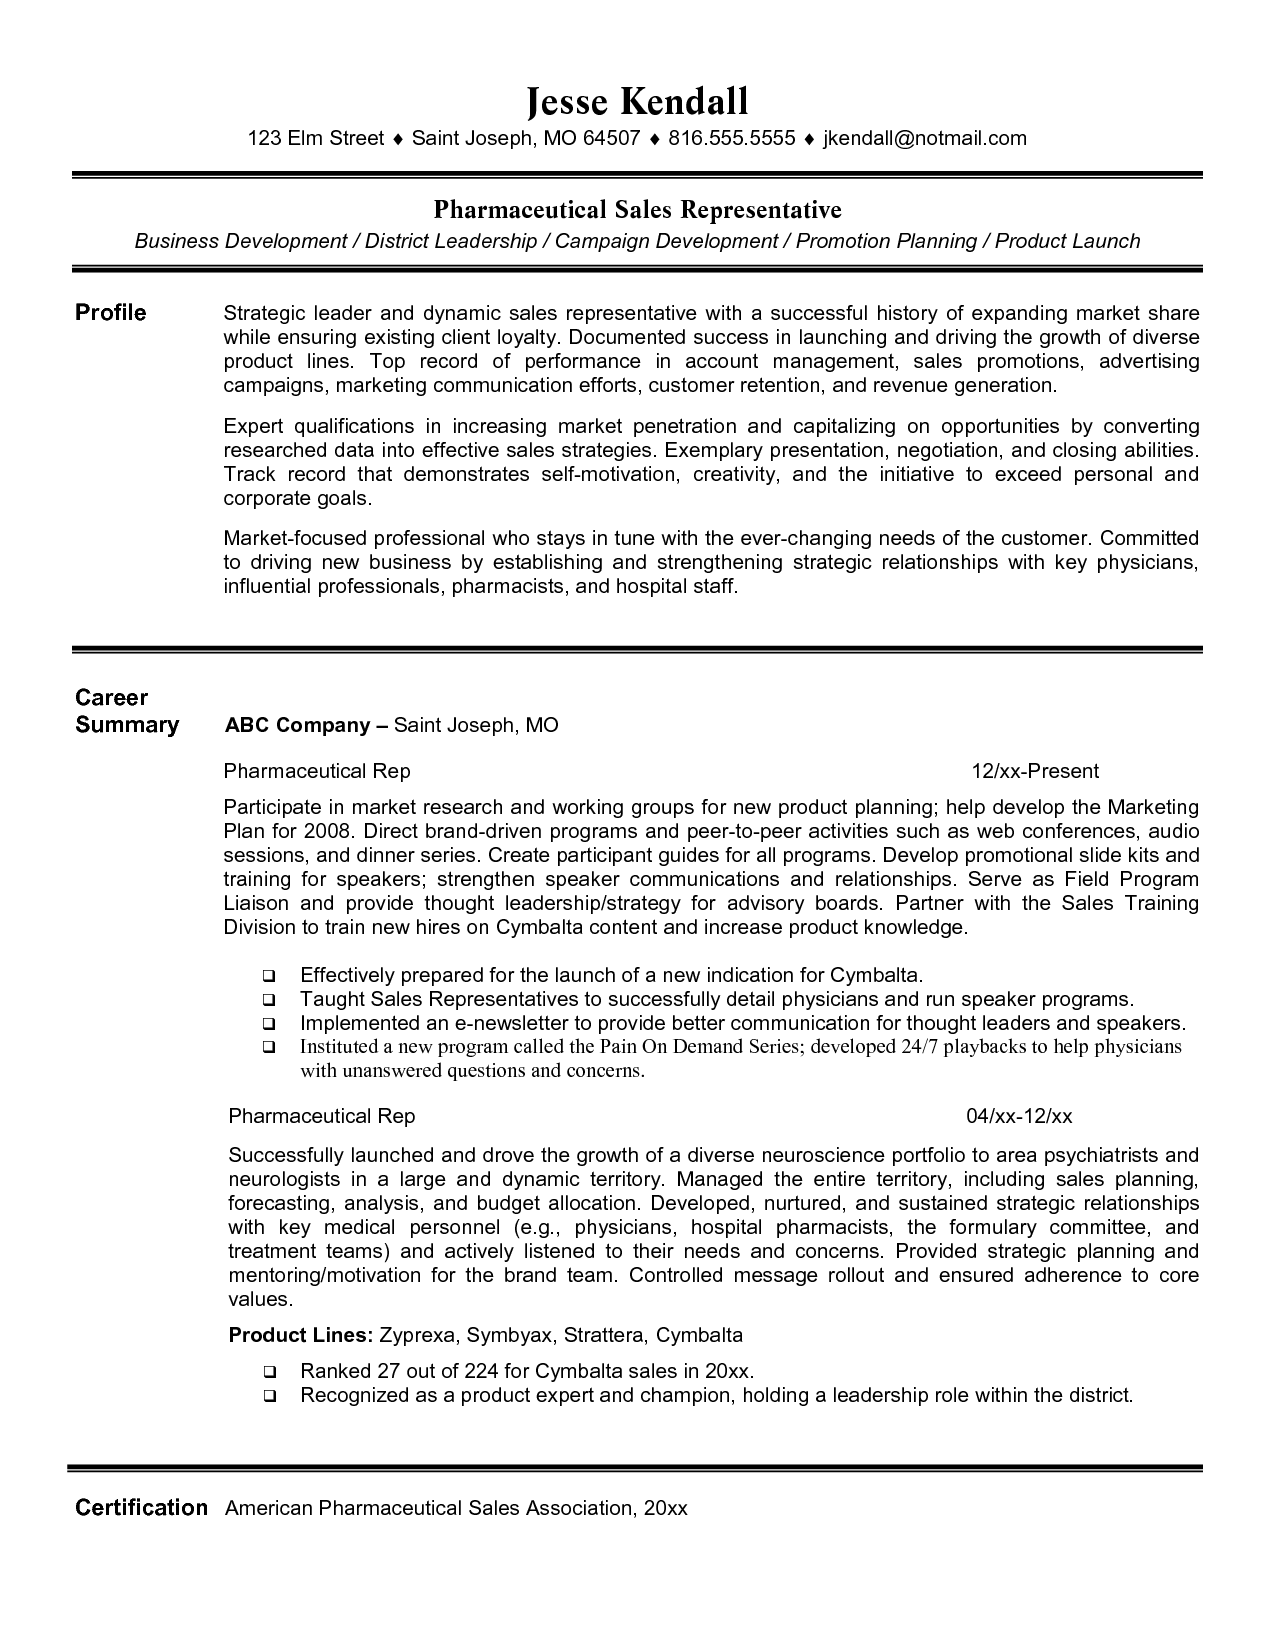 resume examples entry level position resume templates libreoffice activities job title underground school summary address pinterest